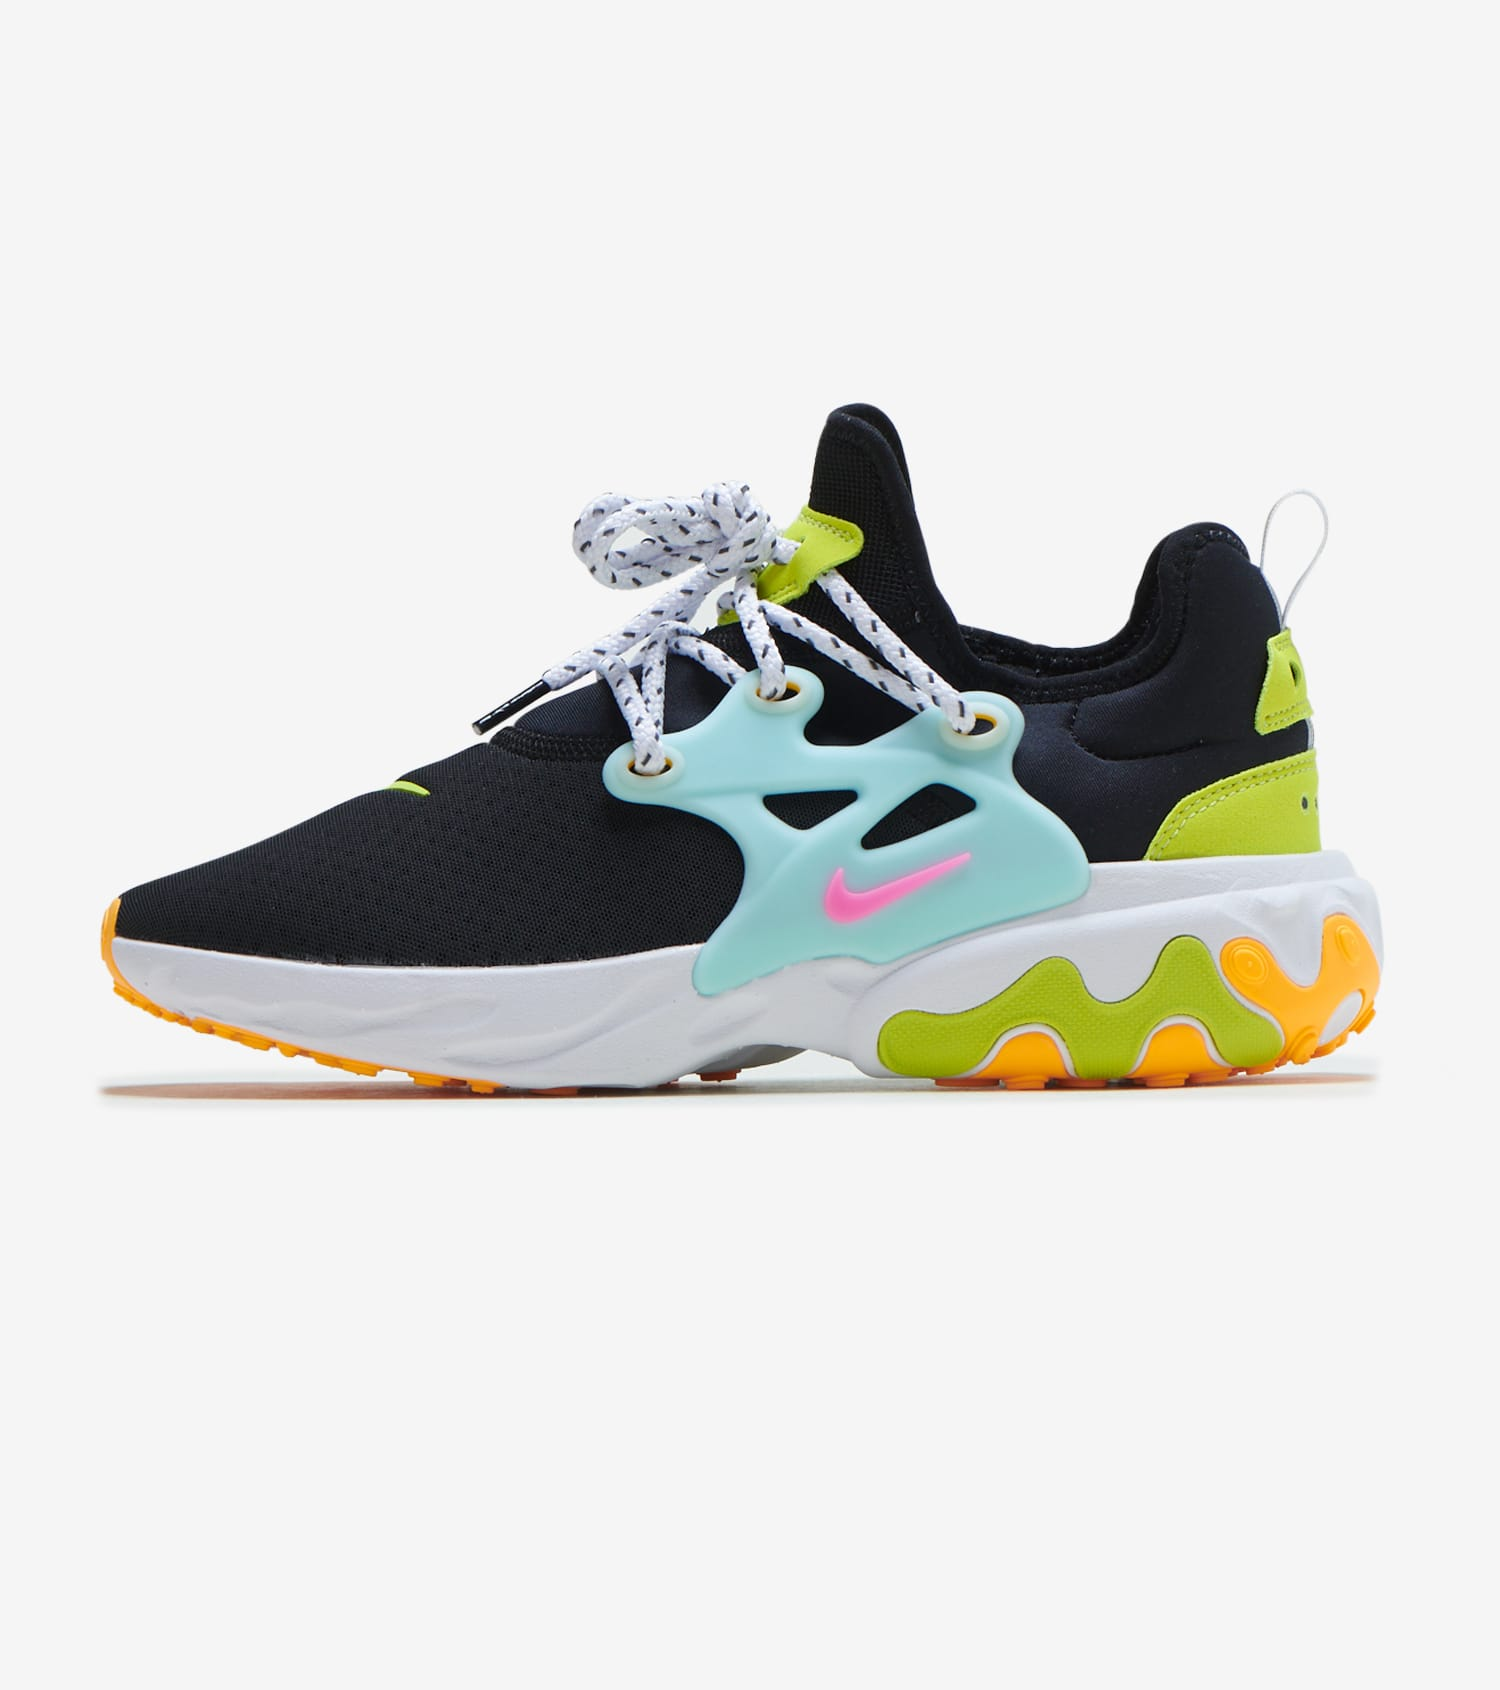 detailed images free shipping online store React Presto